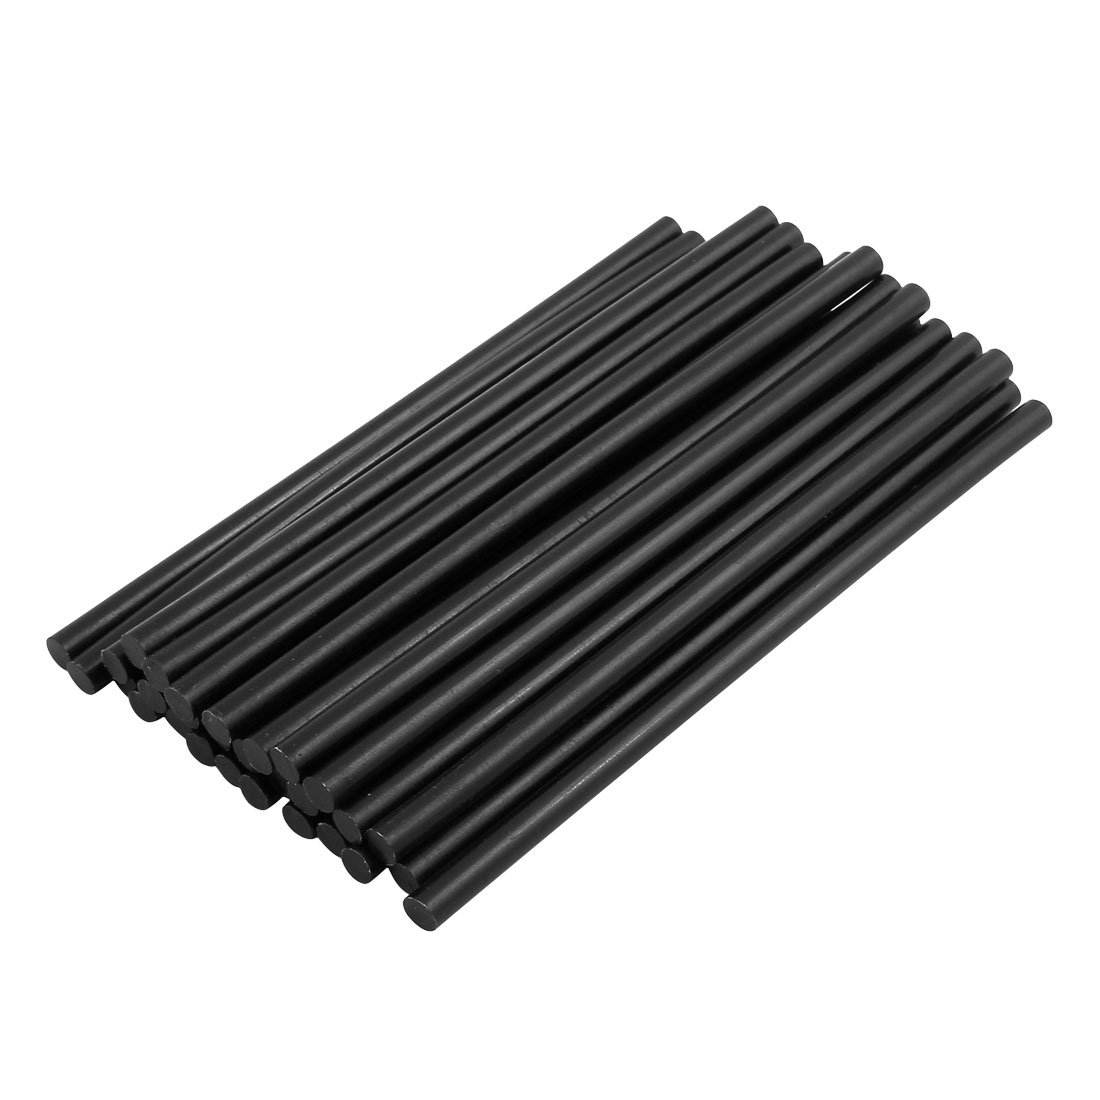 30 Pcs Black 7mm Diameter Soldering Iron Hot Melt Glue Stick 168mm Length